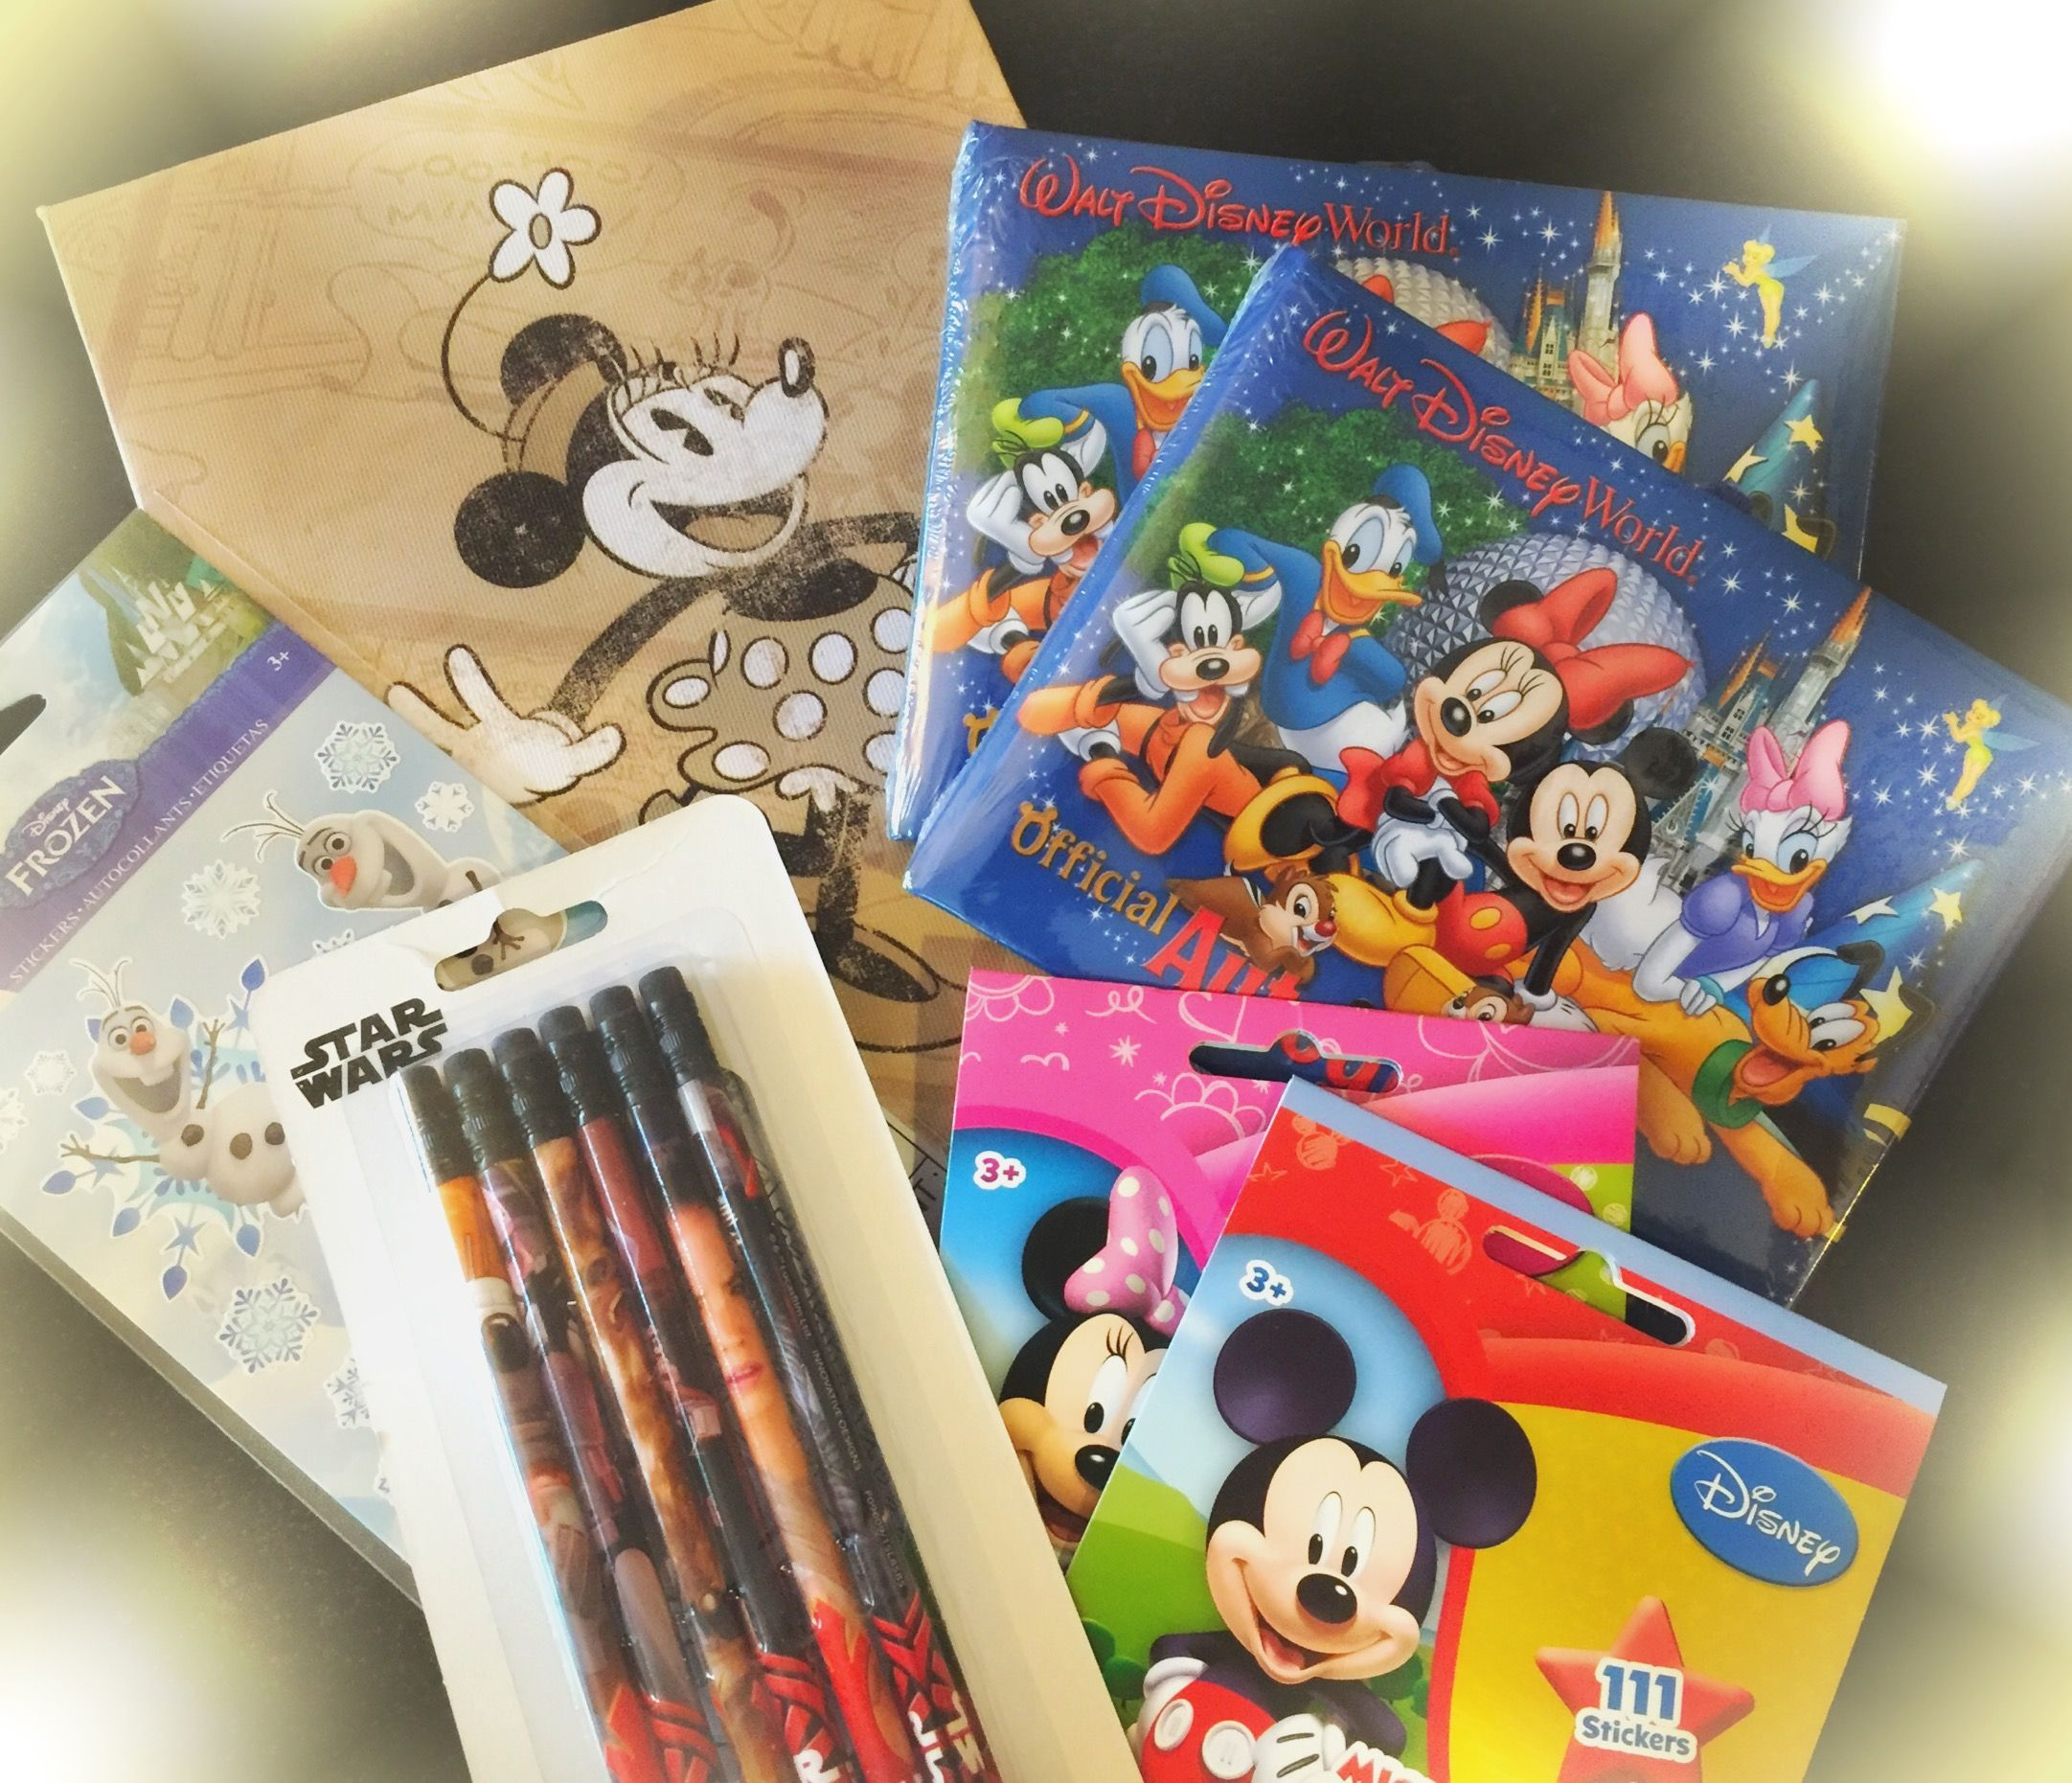 Free+Giveaway:+Disney+Fun+Pack!+  Enter+Here:+http://www.giveawaytab.com/mob.php?pageid=148724681995043